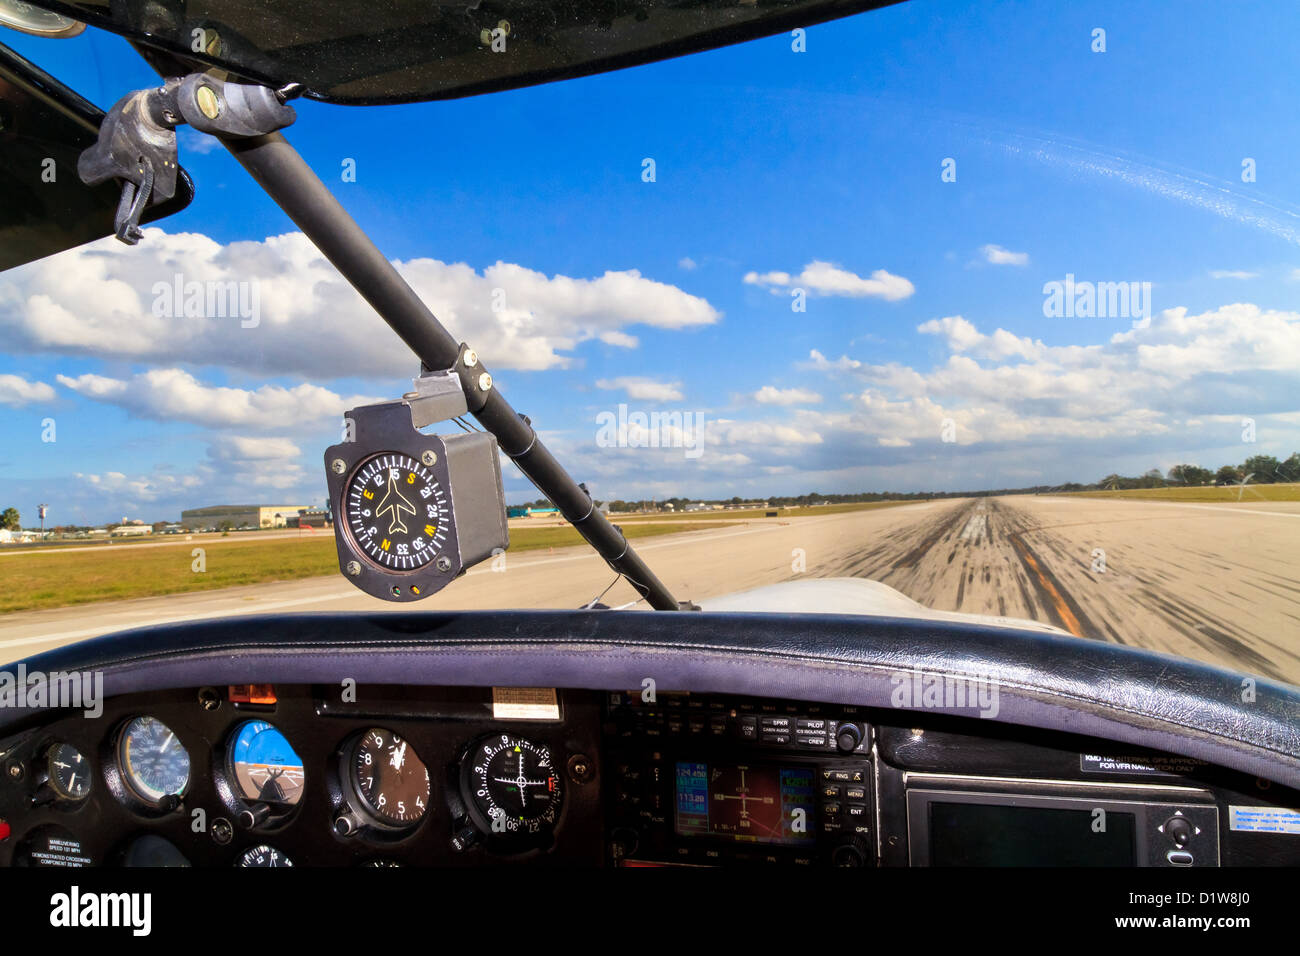 Cockpit view from small aircraft taking off from runway - Stock Image